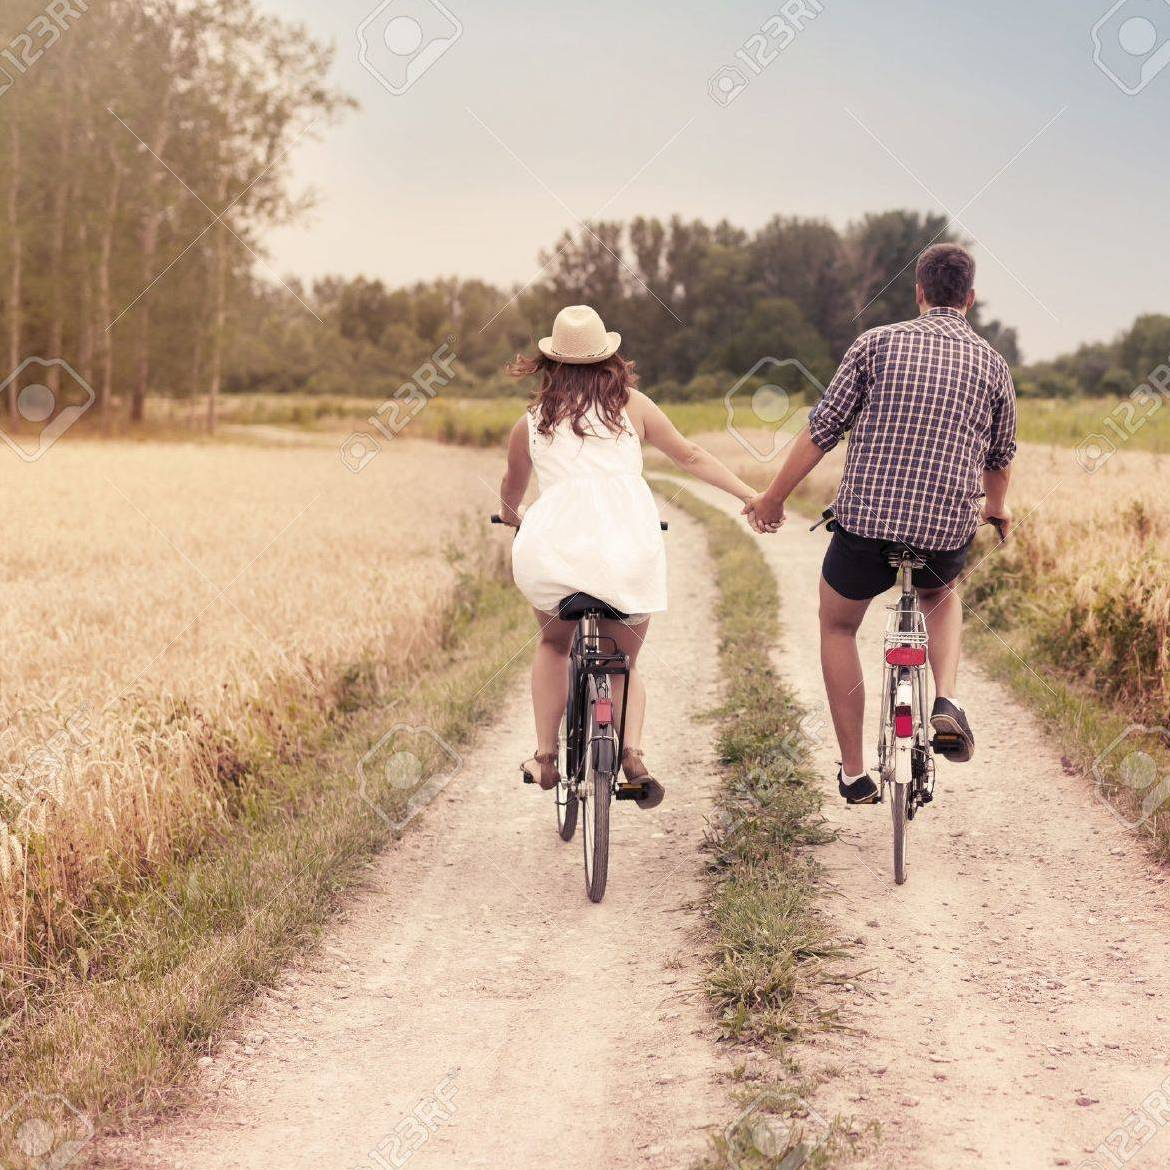 couple riding a bike on a countryside bike path w greenery and they are riding side by side holding hands. She has a straw hat on.